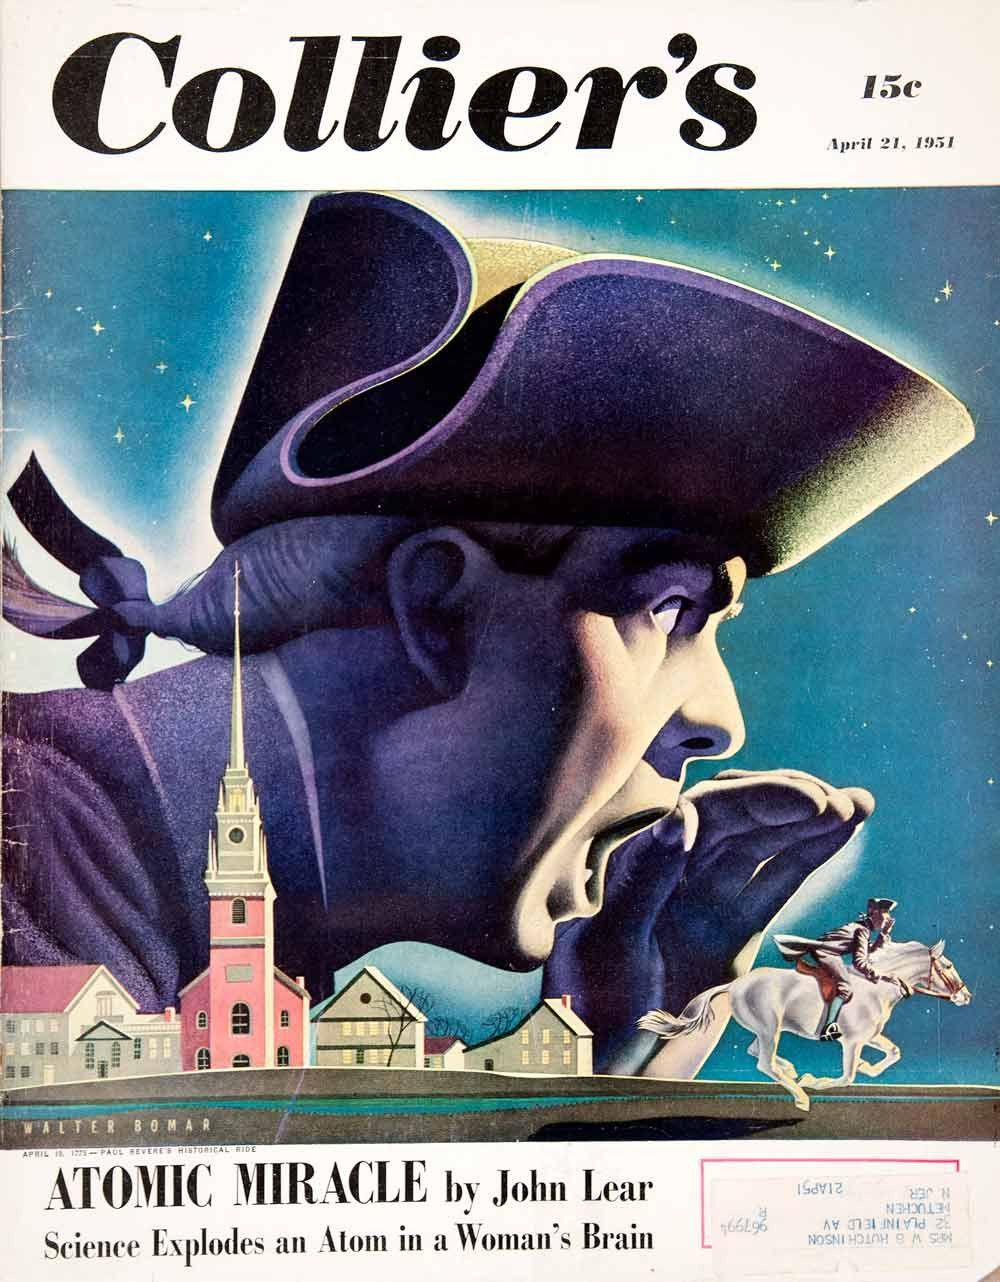 1951 cover colliers paul revere midnight horse ride walter bomar